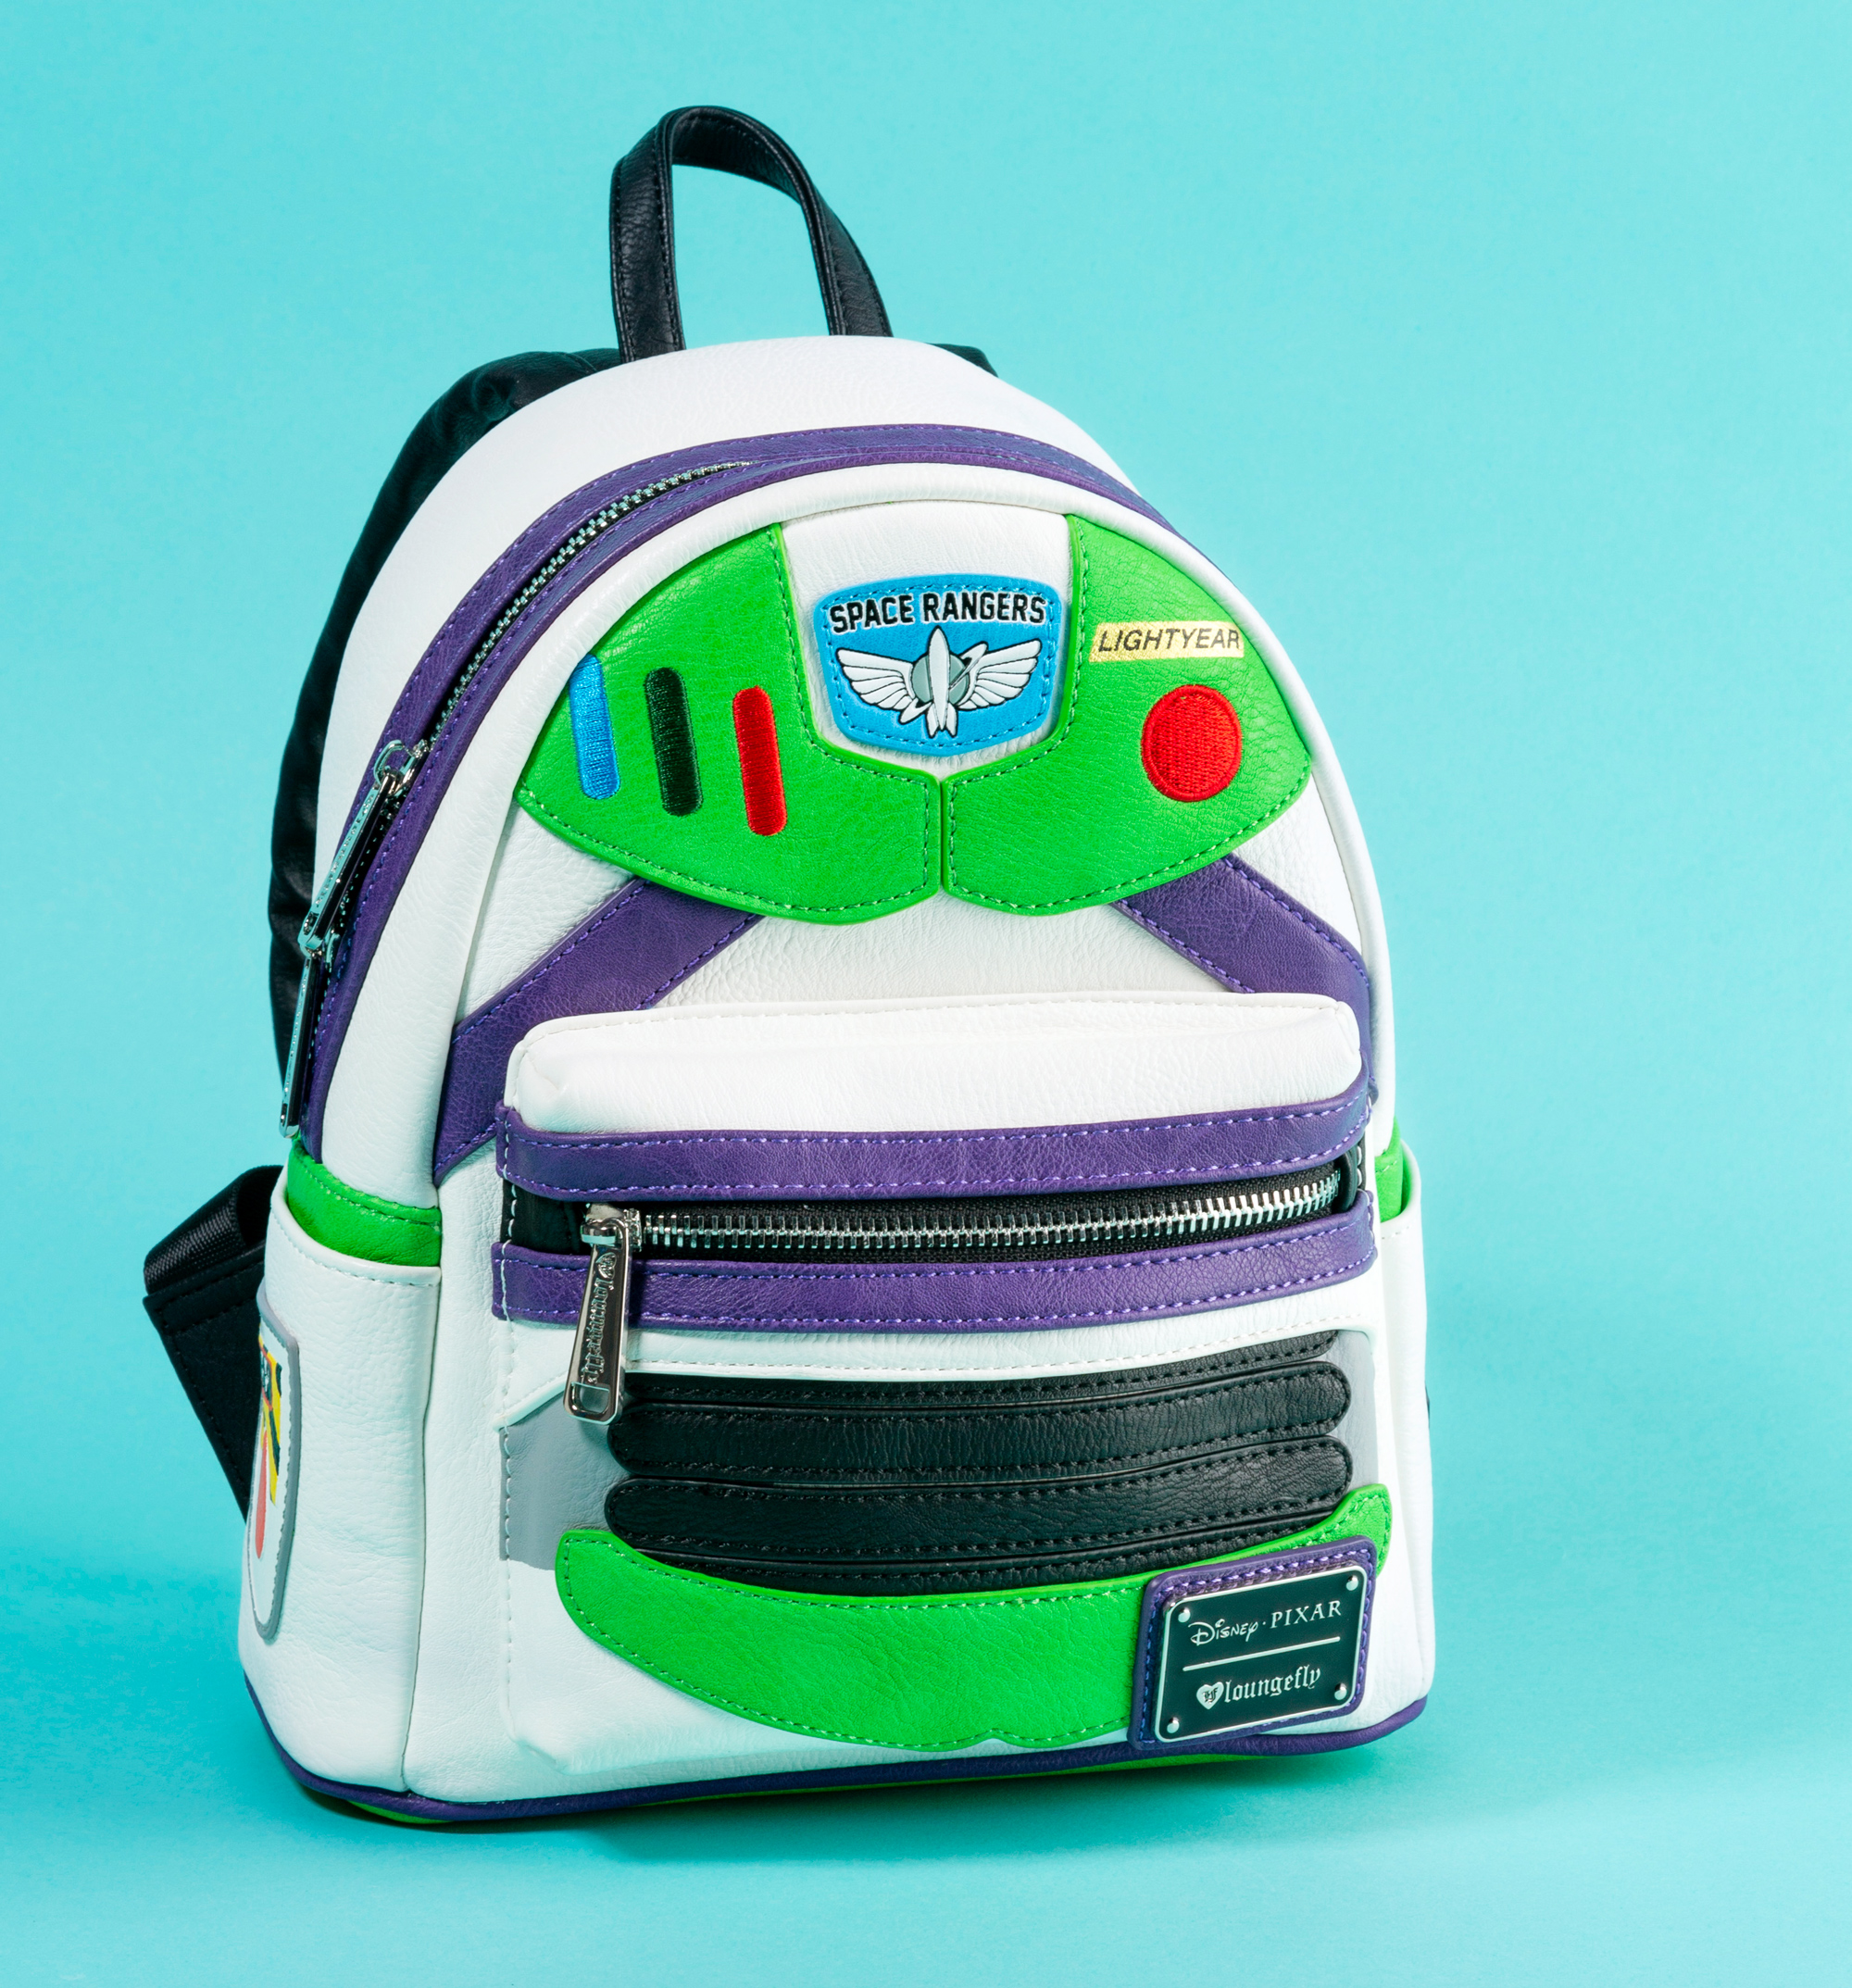 d273a0dcb88 Loungefly x Disney Buzz Lightyear Mini Backpack - Made of premium Saffiano  faux leather - Measures 27cm height